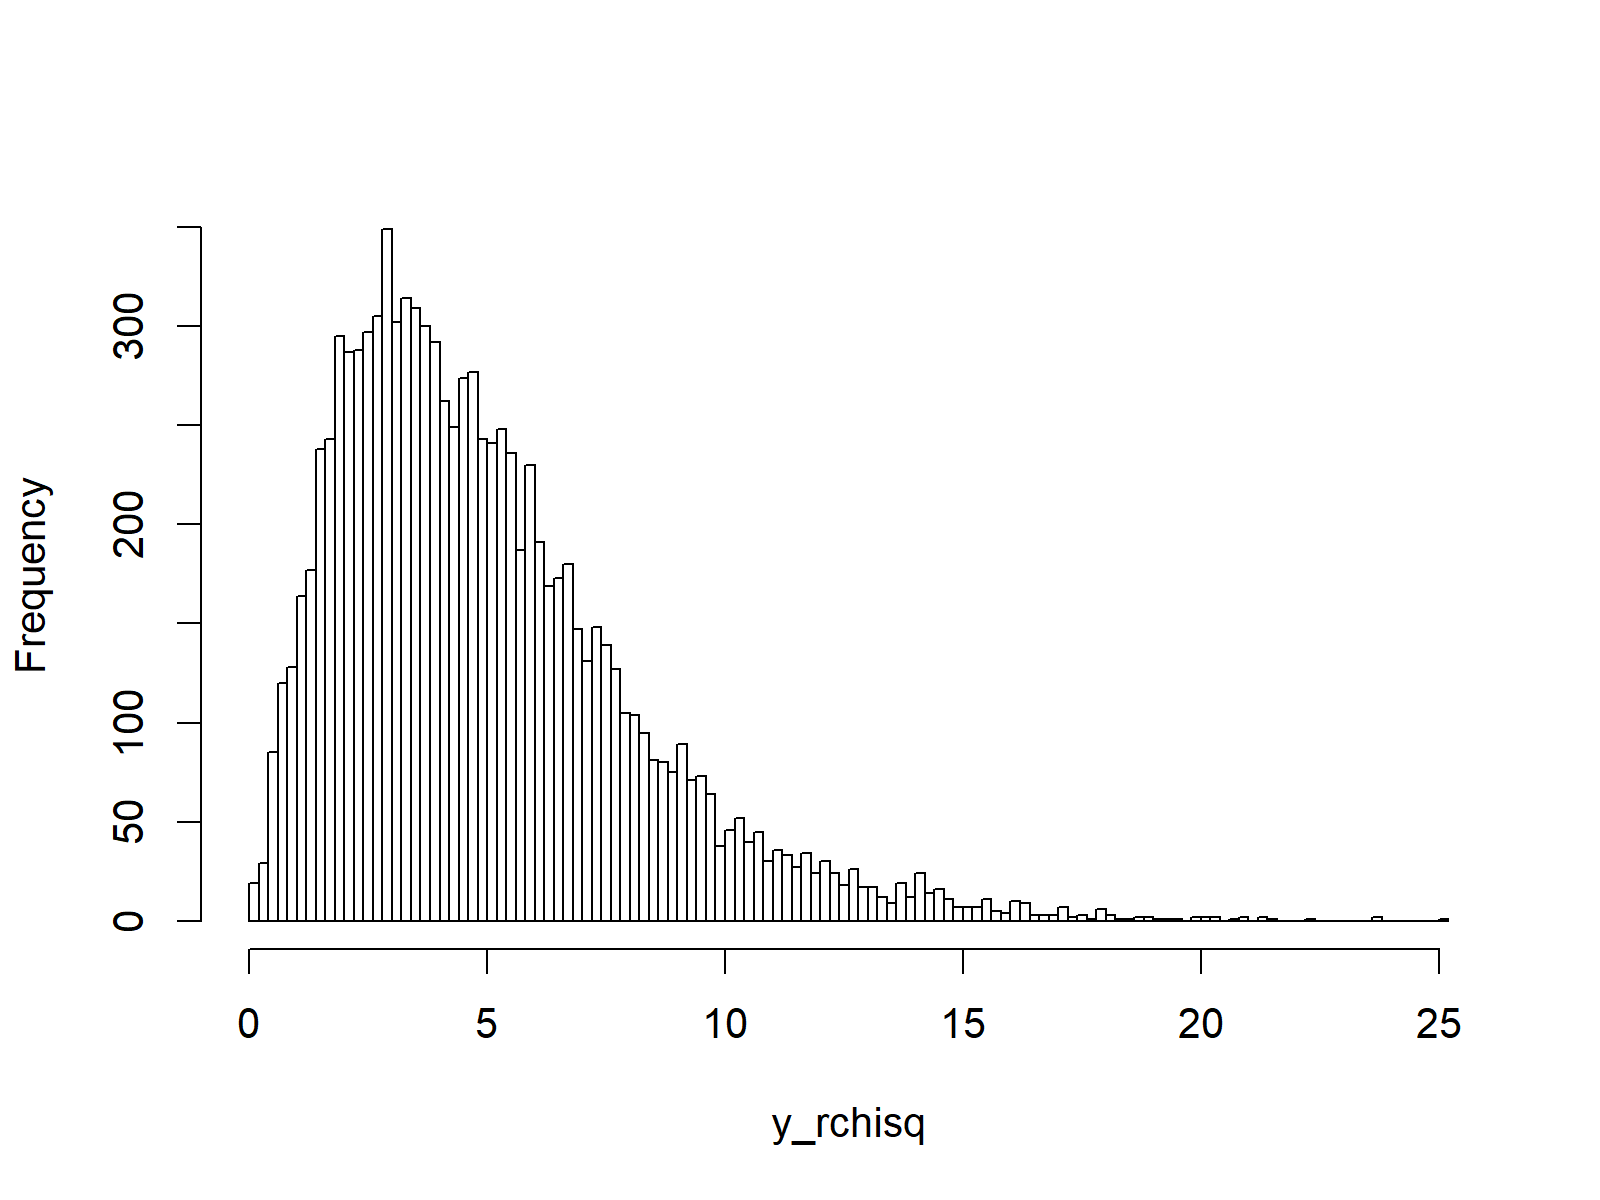 random numbers drawn from chi square density in r